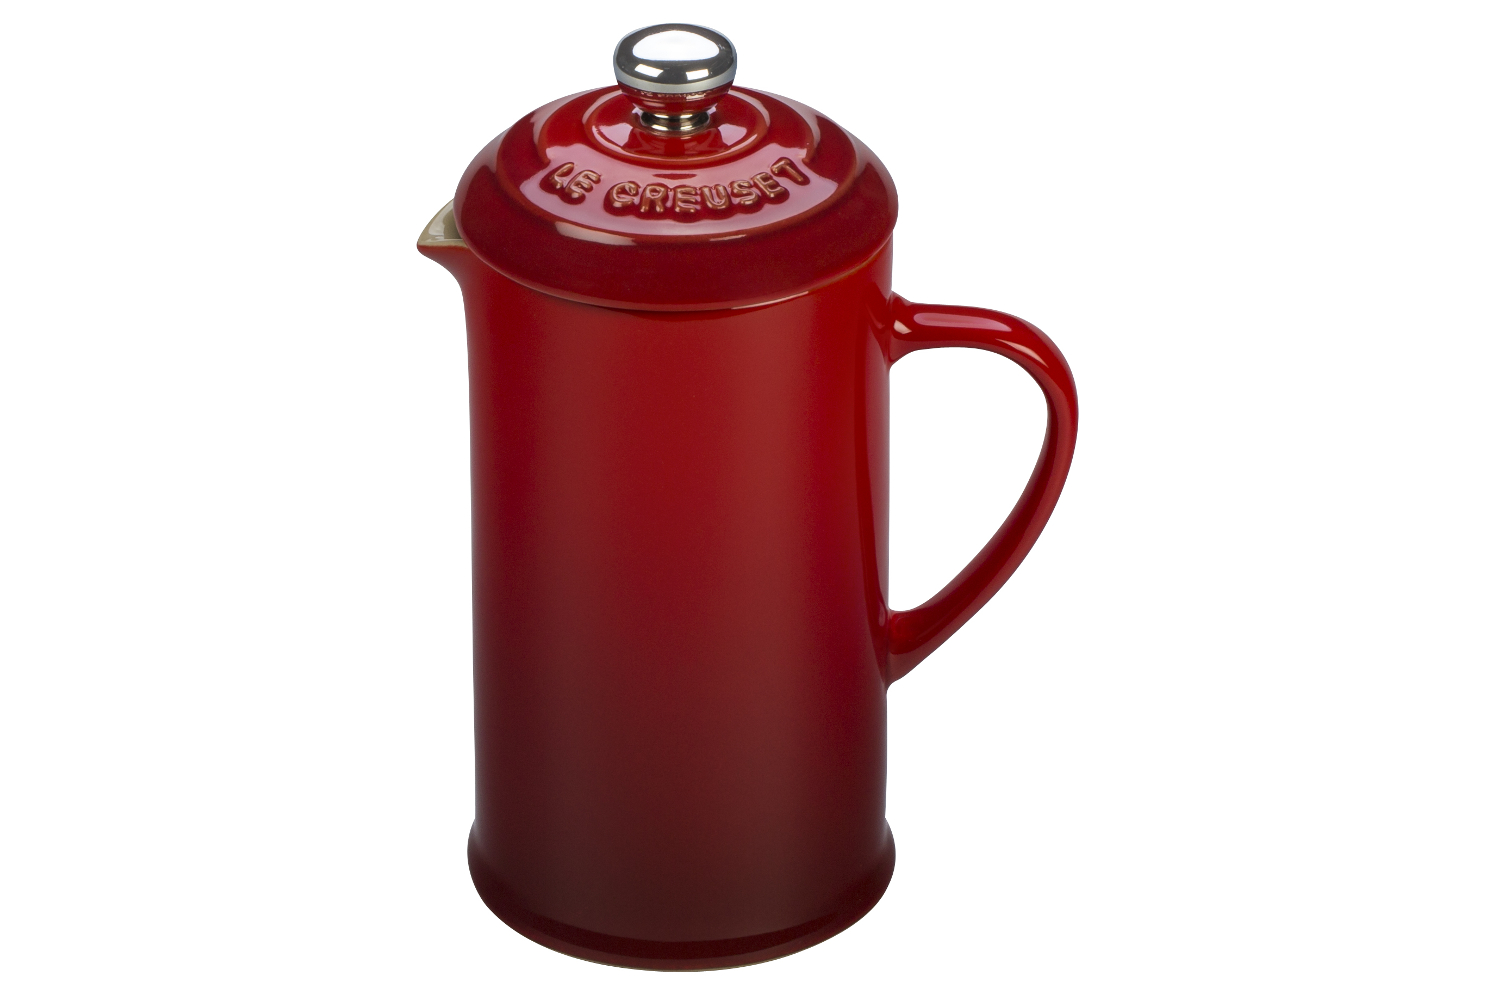 Le Creuset Stoneware 12 oz. French Press - Cerise